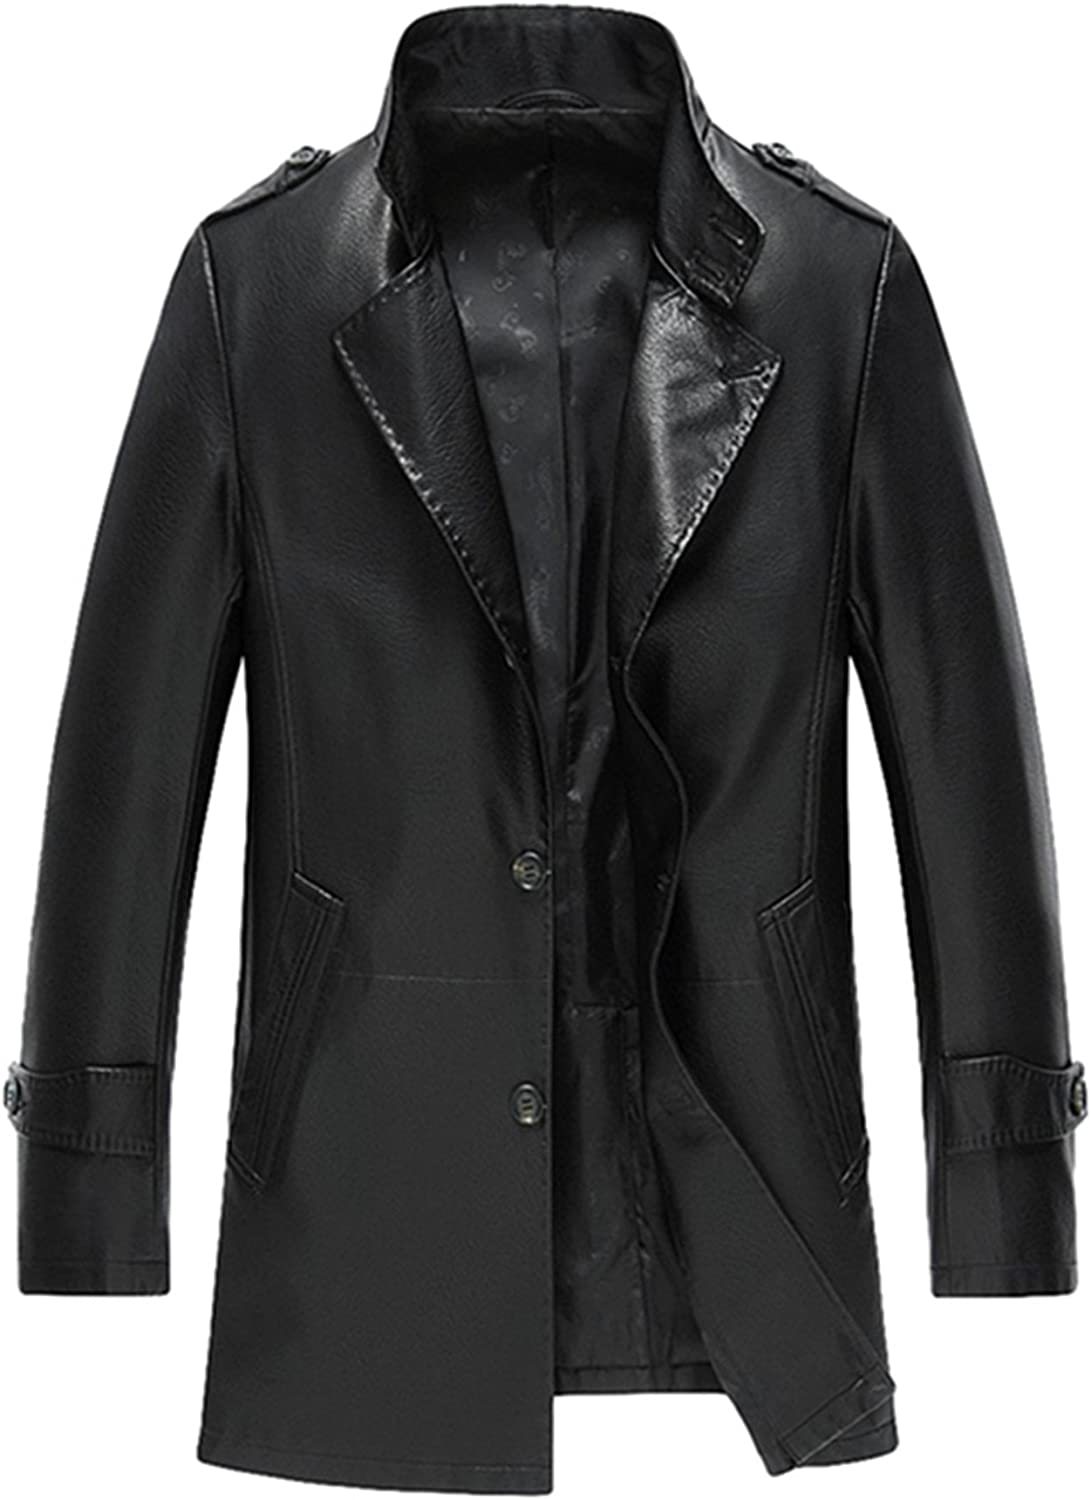 Men's leather Fit business leather suit collar leather jacket